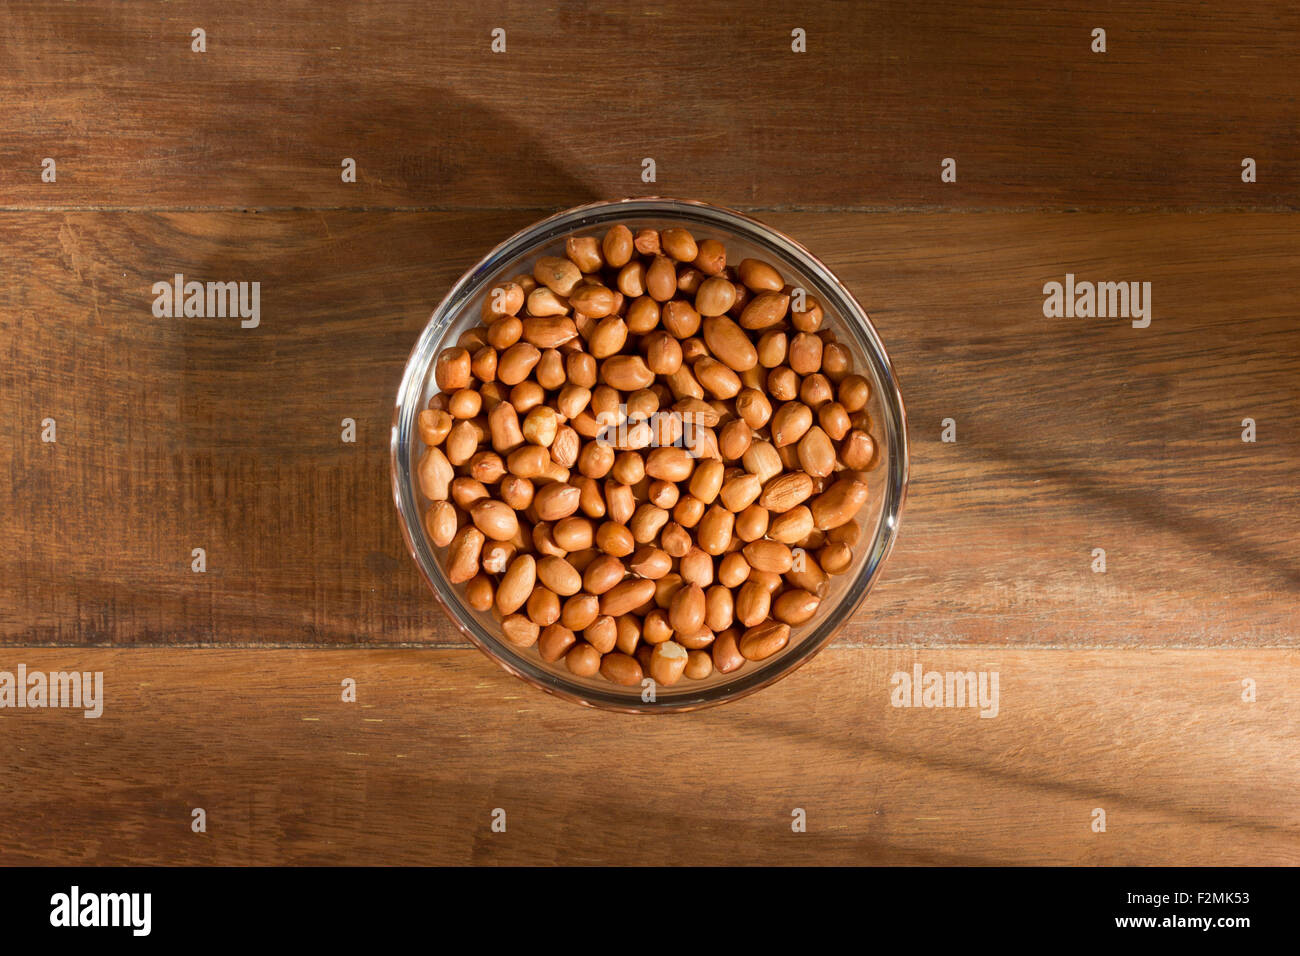 peanuts in a bowl on wood background Stock Photo